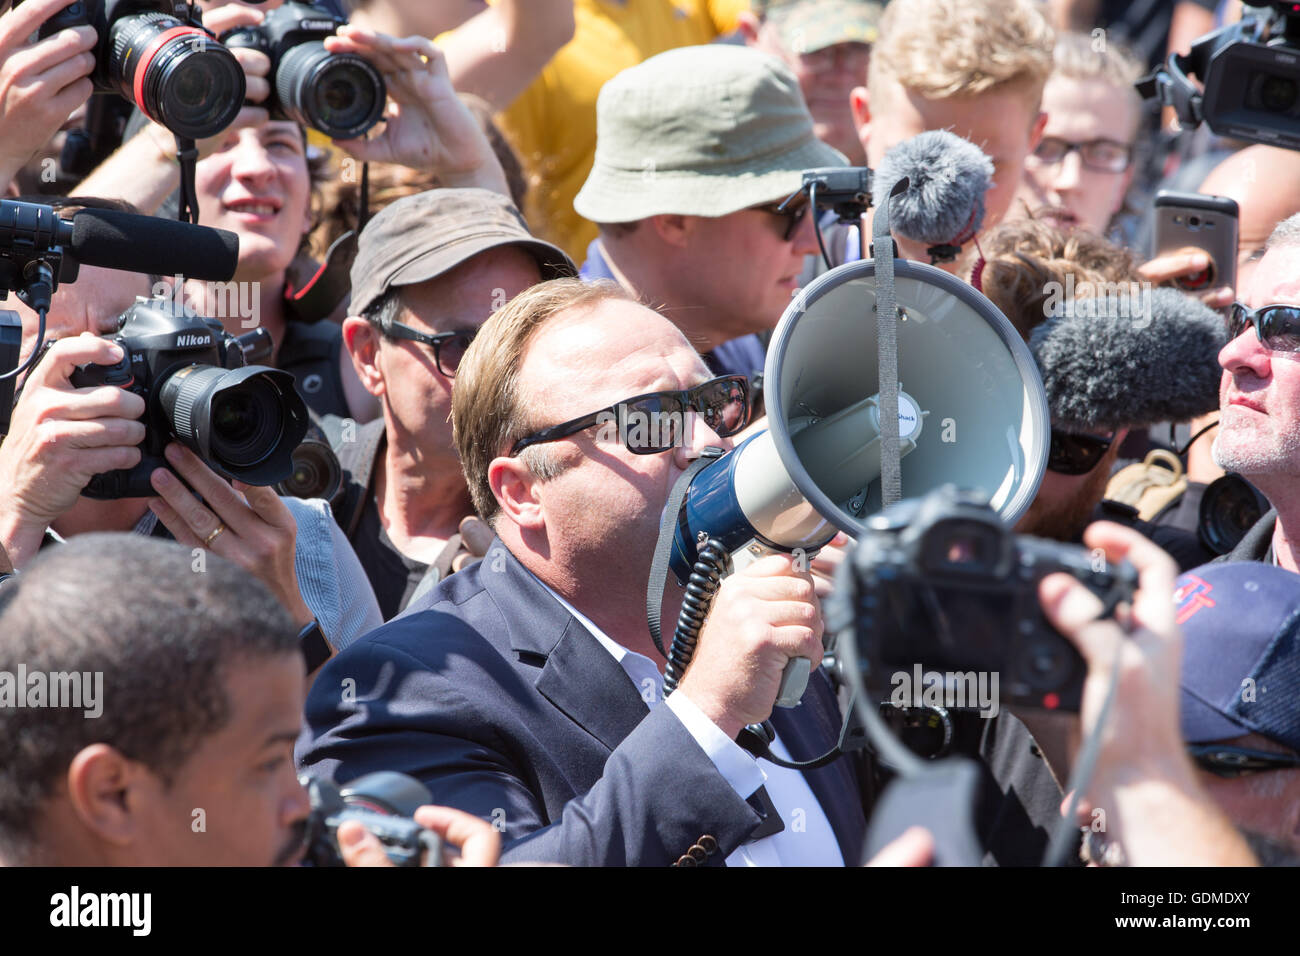 Cleveland, Ohio, USA. 19th July, 2016. Right wing talk show host Alex Jones stirs up the crowd in Public Square - Stock Image